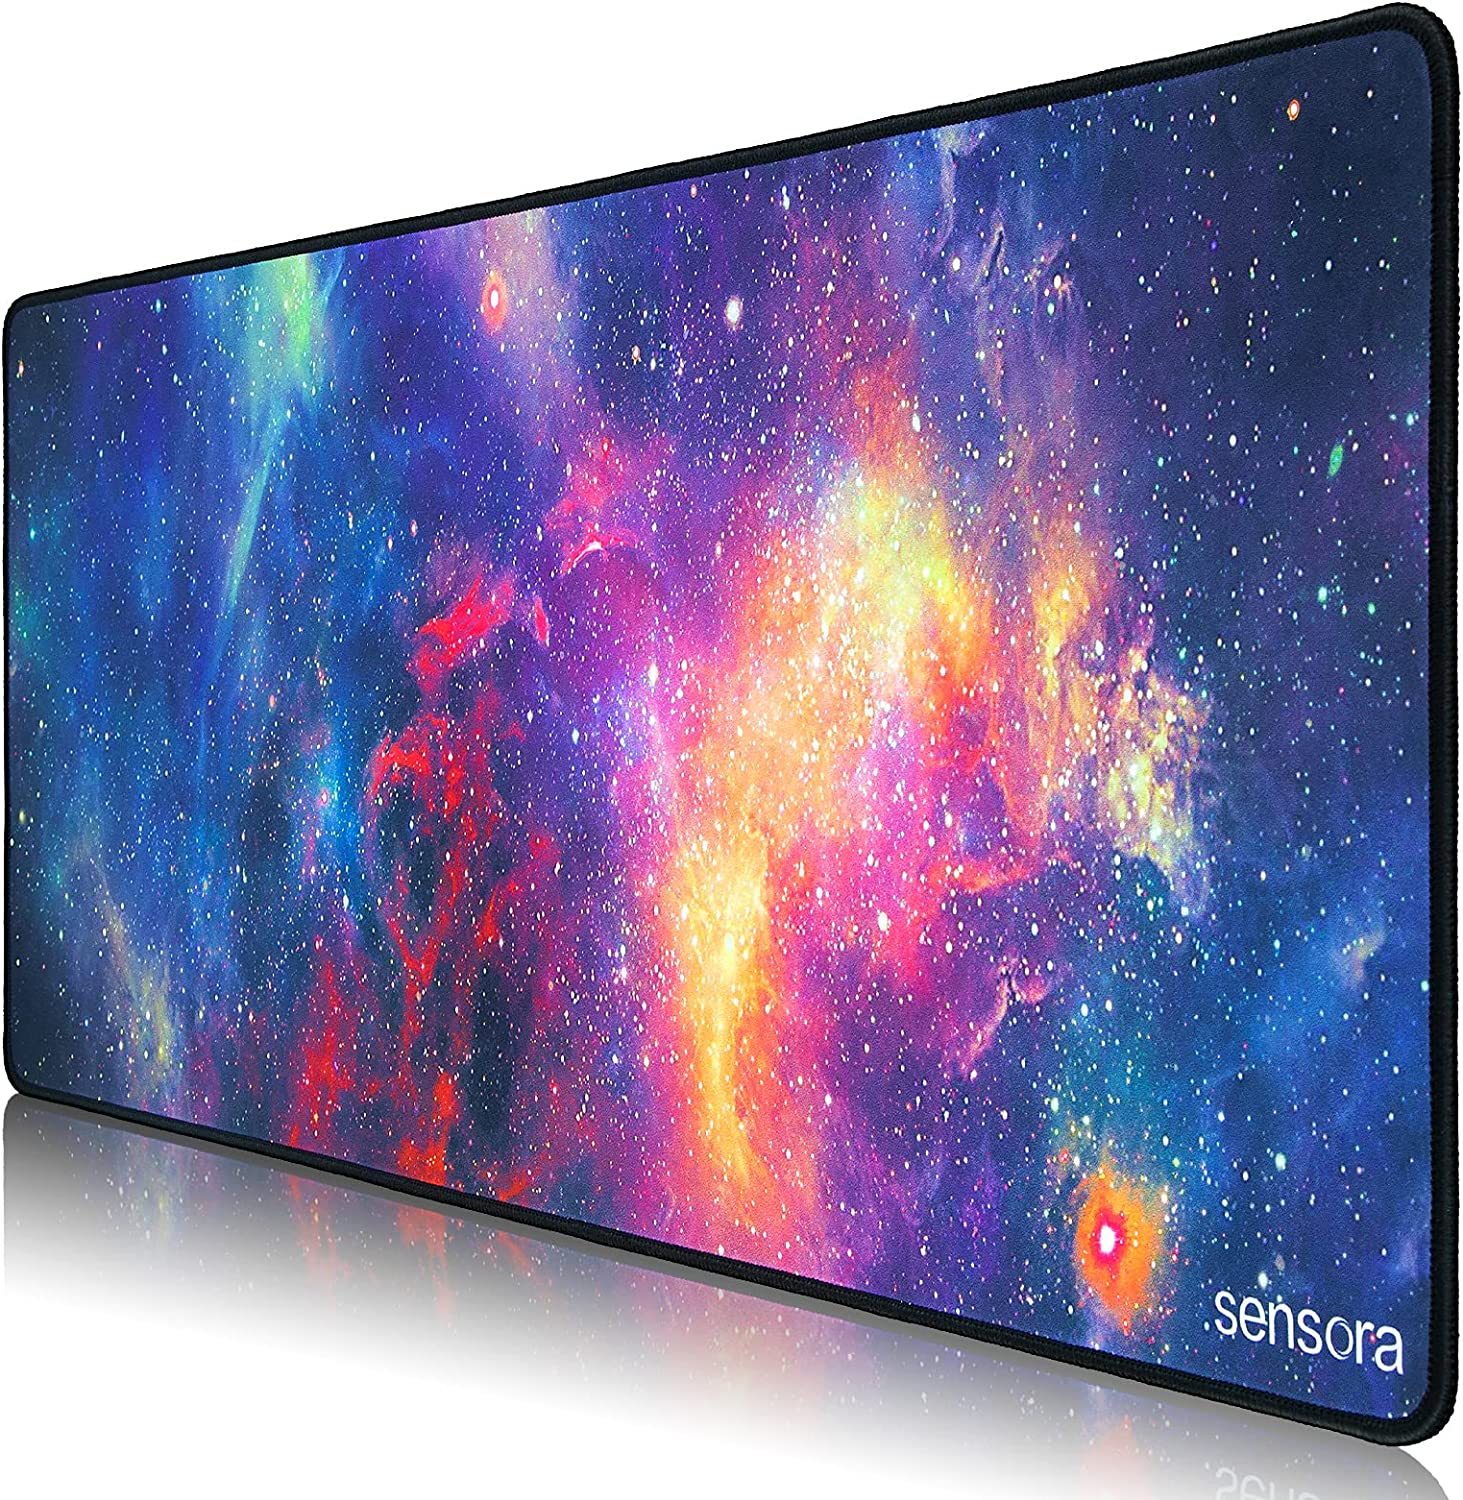 High material XXL Large Mouse Pad 31.5X11.8X0.15 Inventory cleanup selling sale Inch and No-Slip with Base S